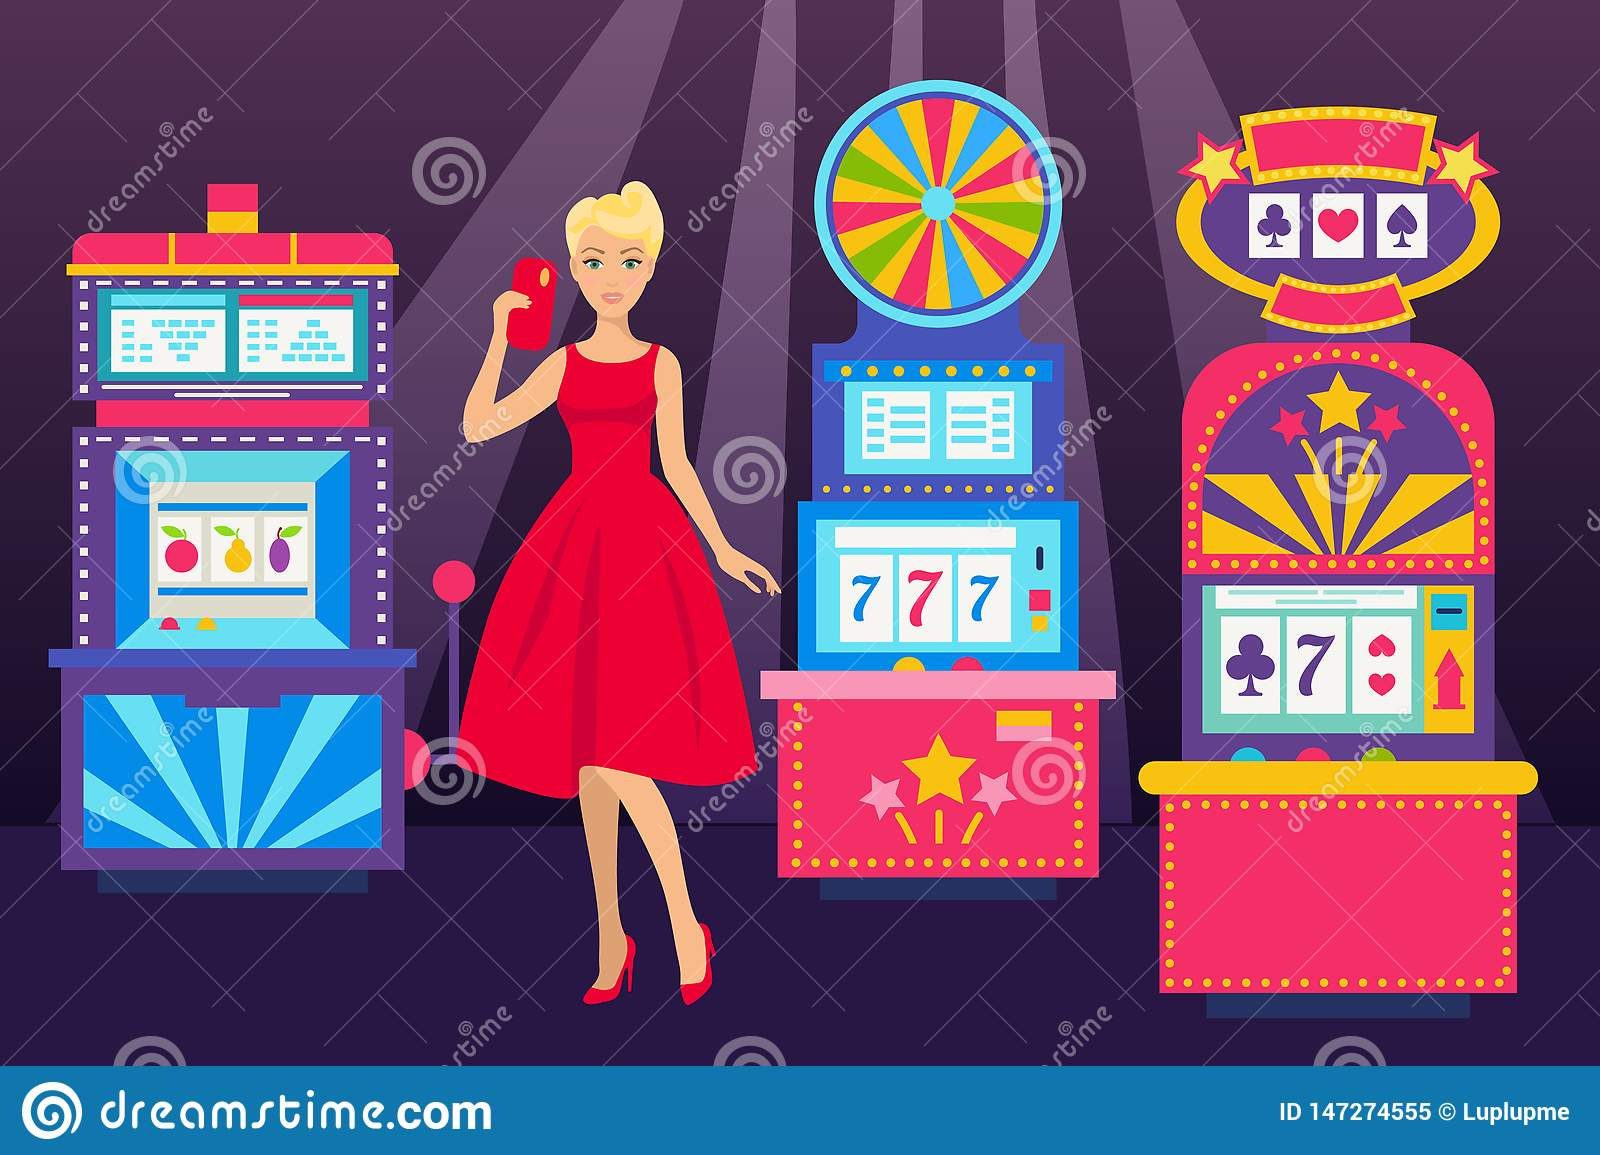 Slot Machine Stock Photos and Images - RF